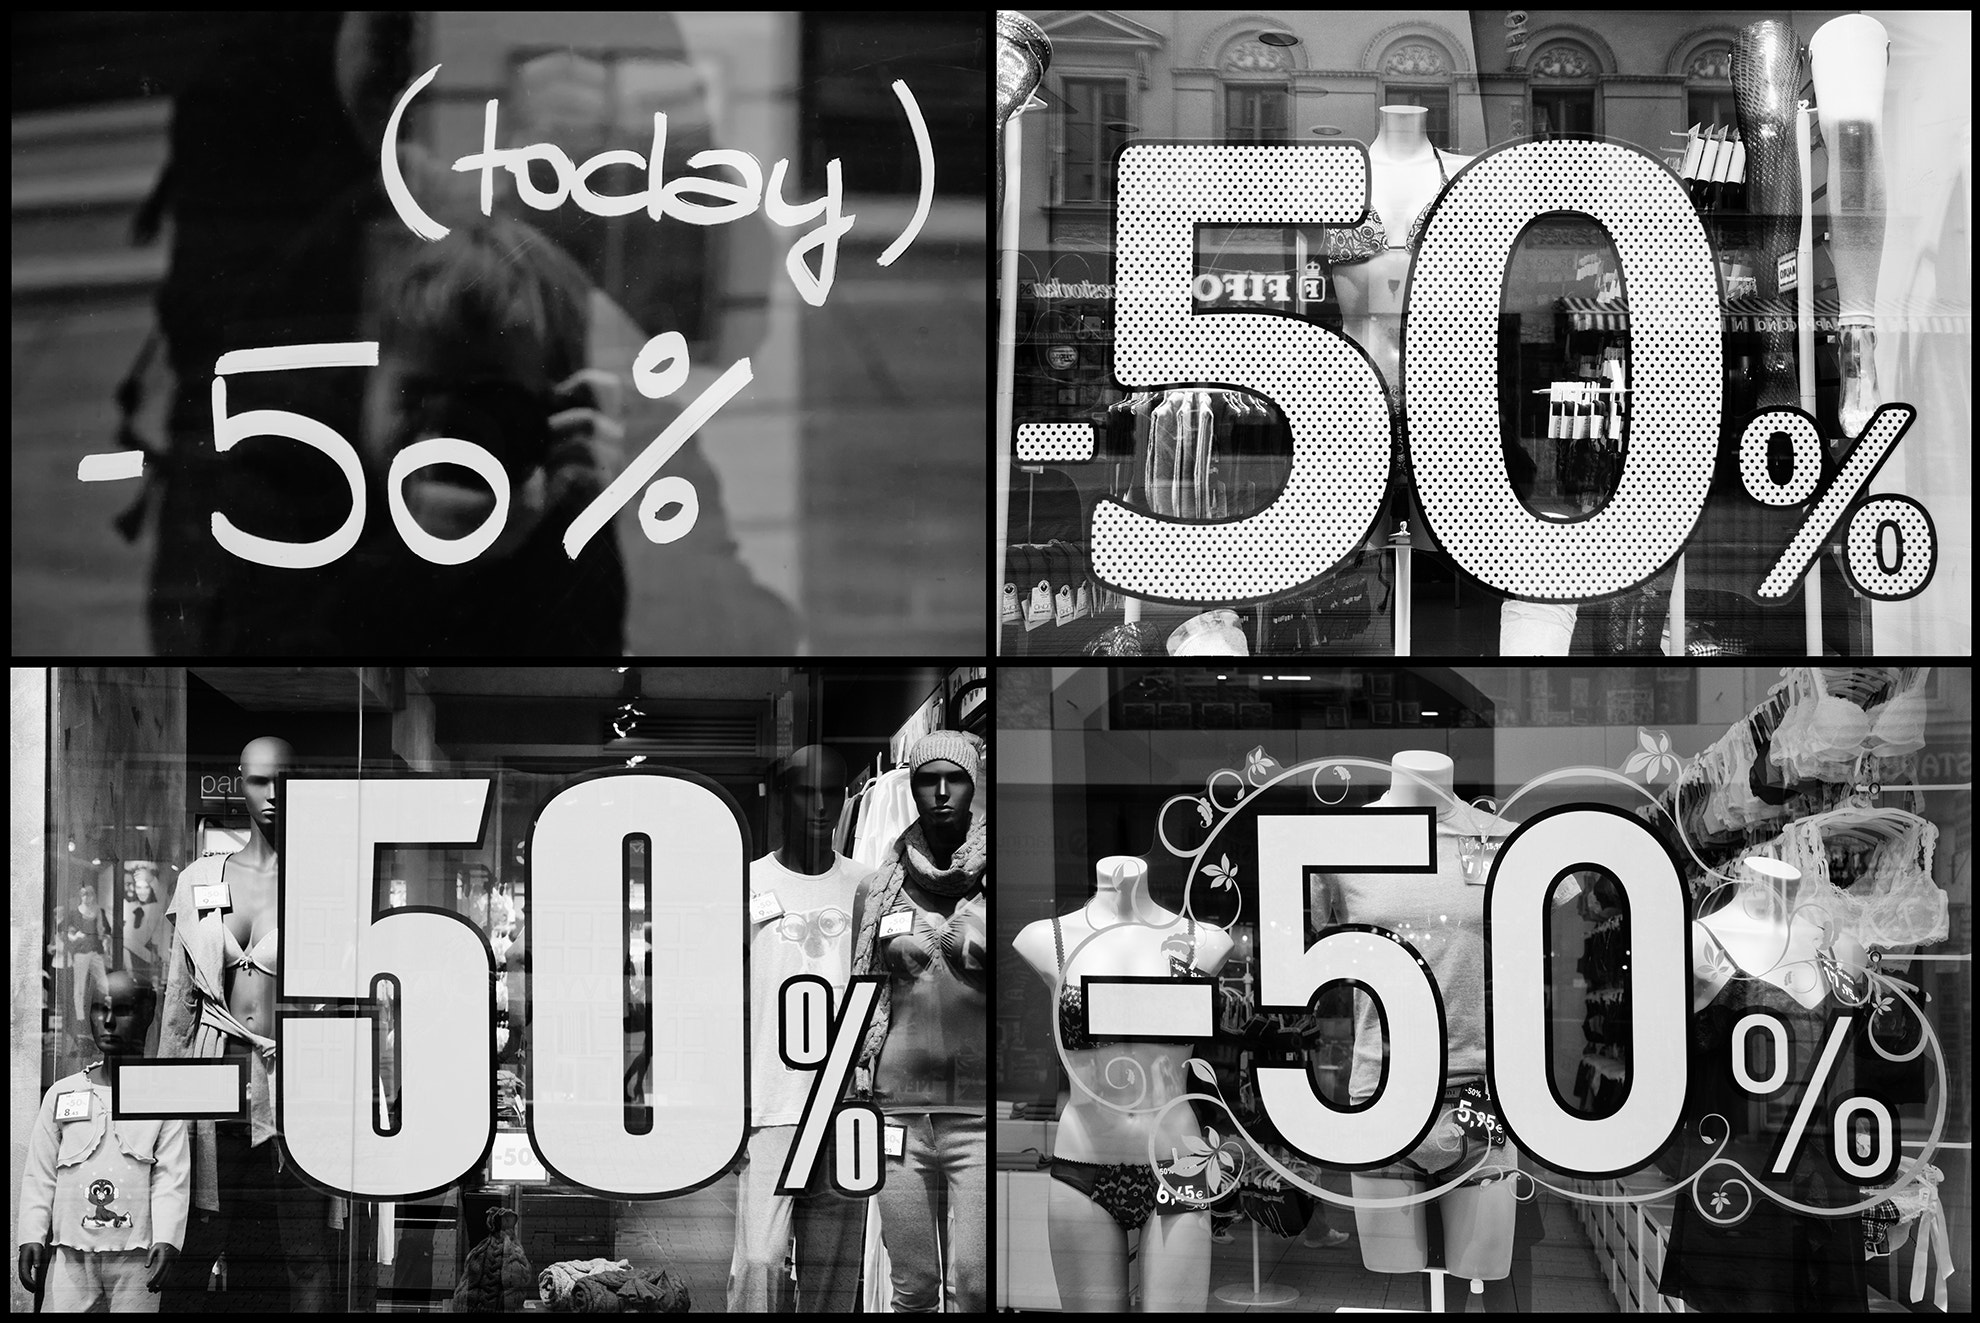 Photograph Today 50% by Martin Hricko on 500px